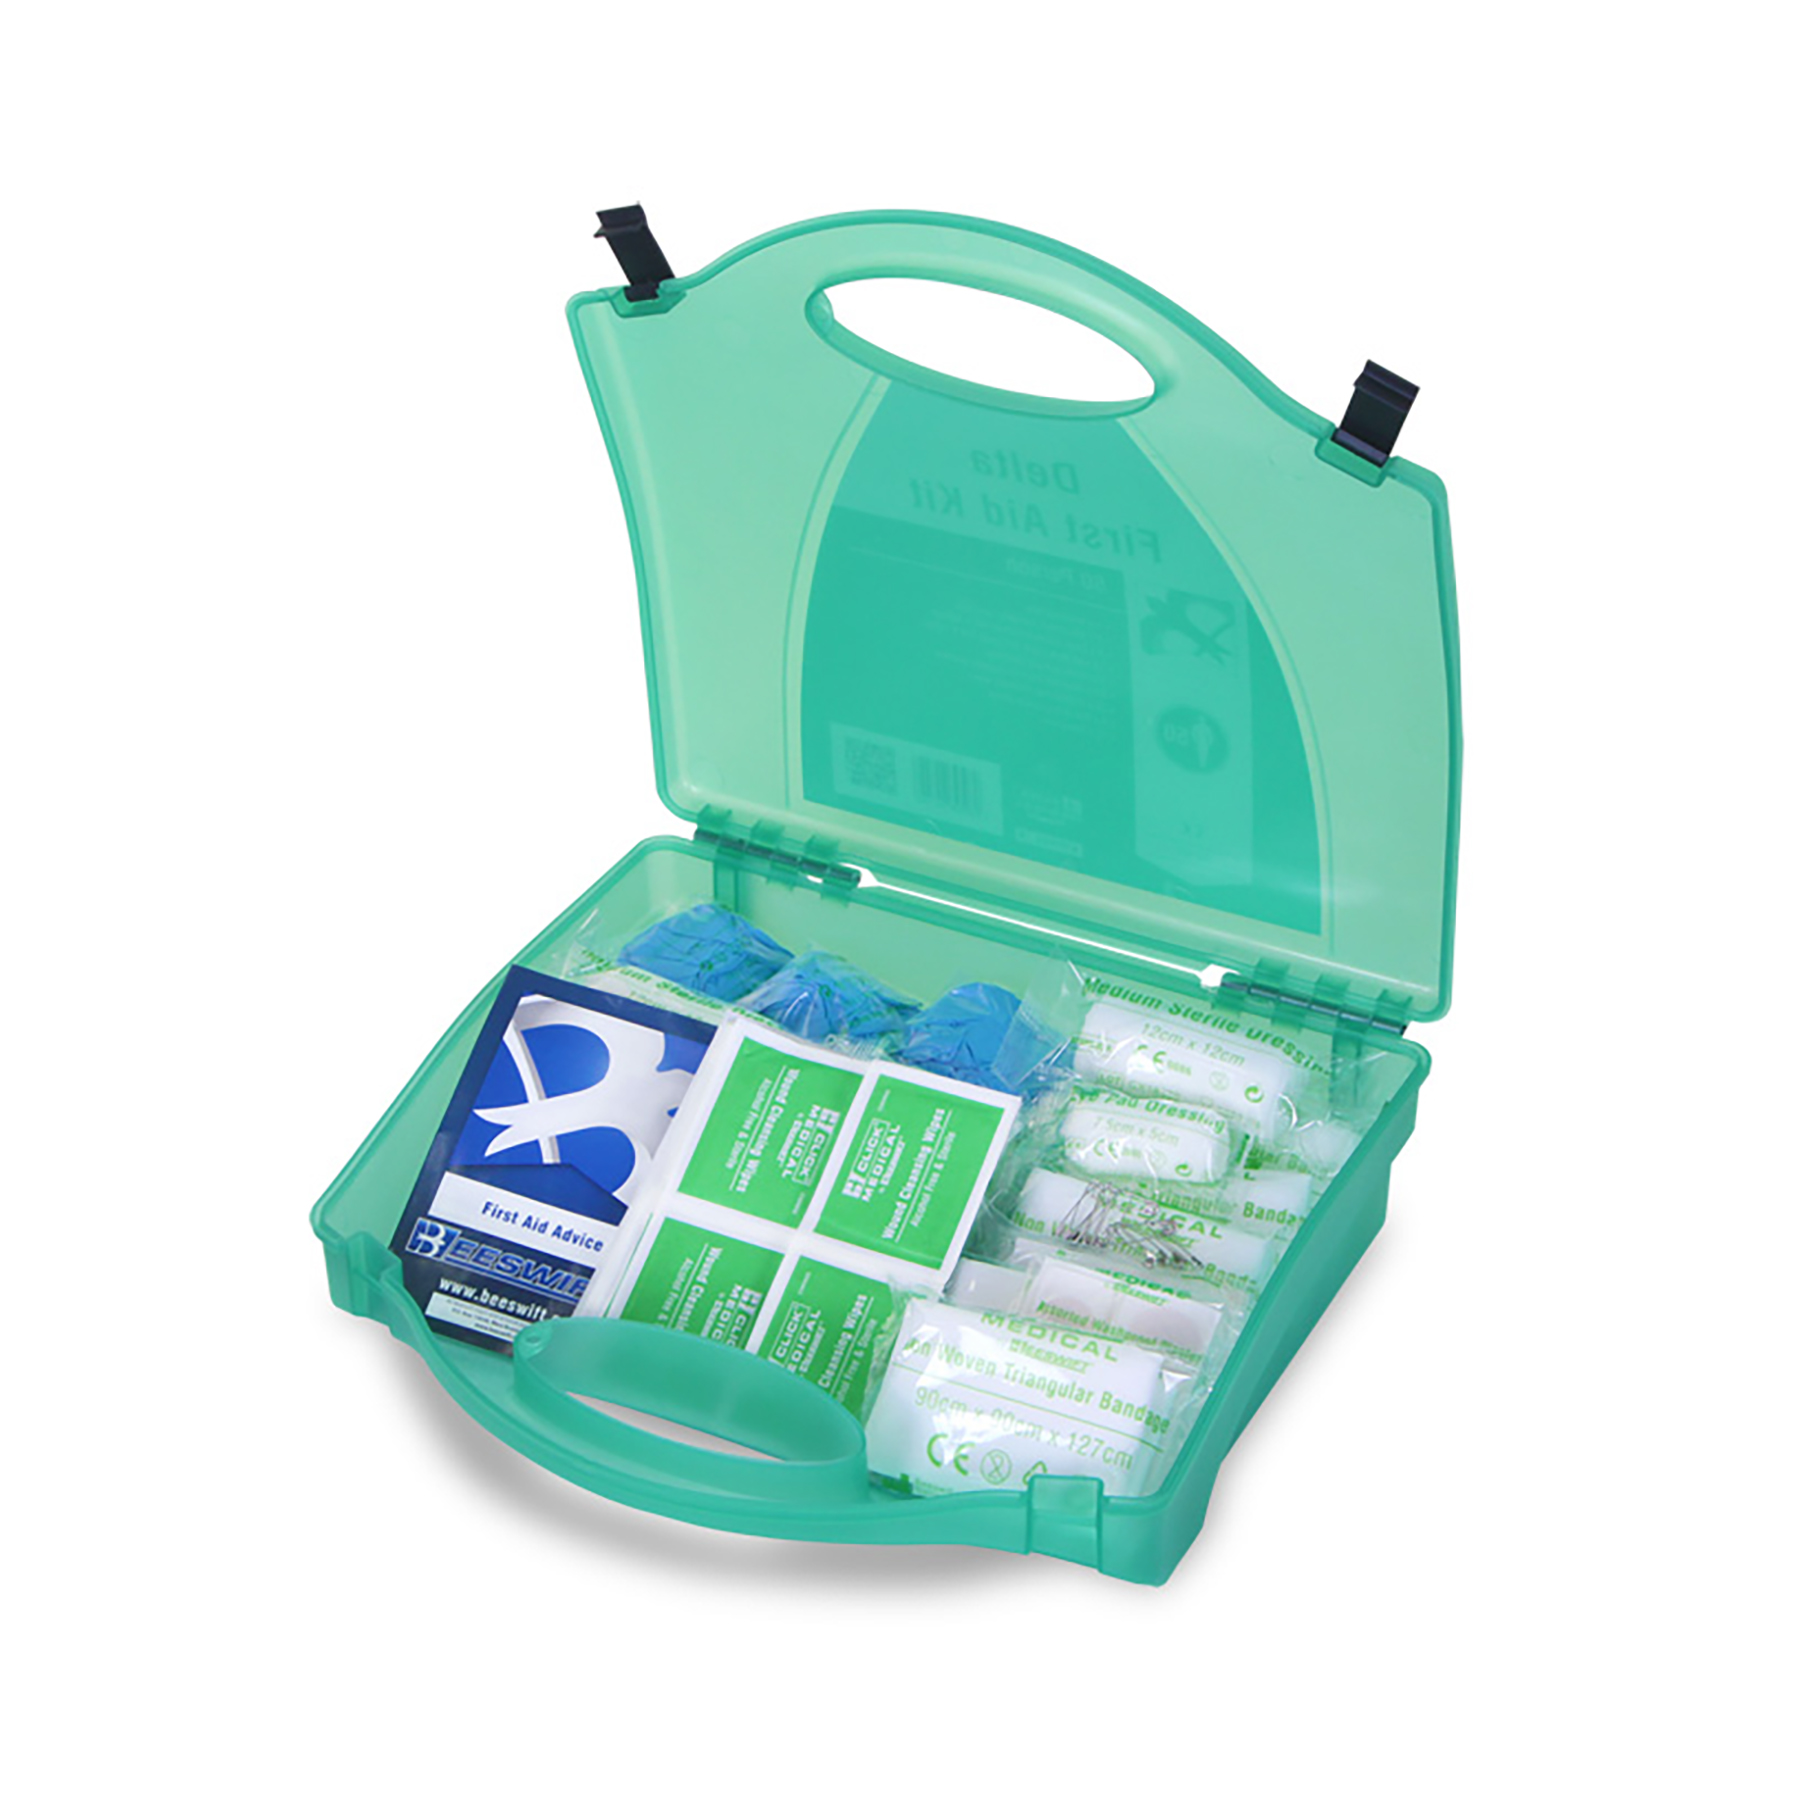 5 Star Facilities First Aid Kit HS1 1-50 Person